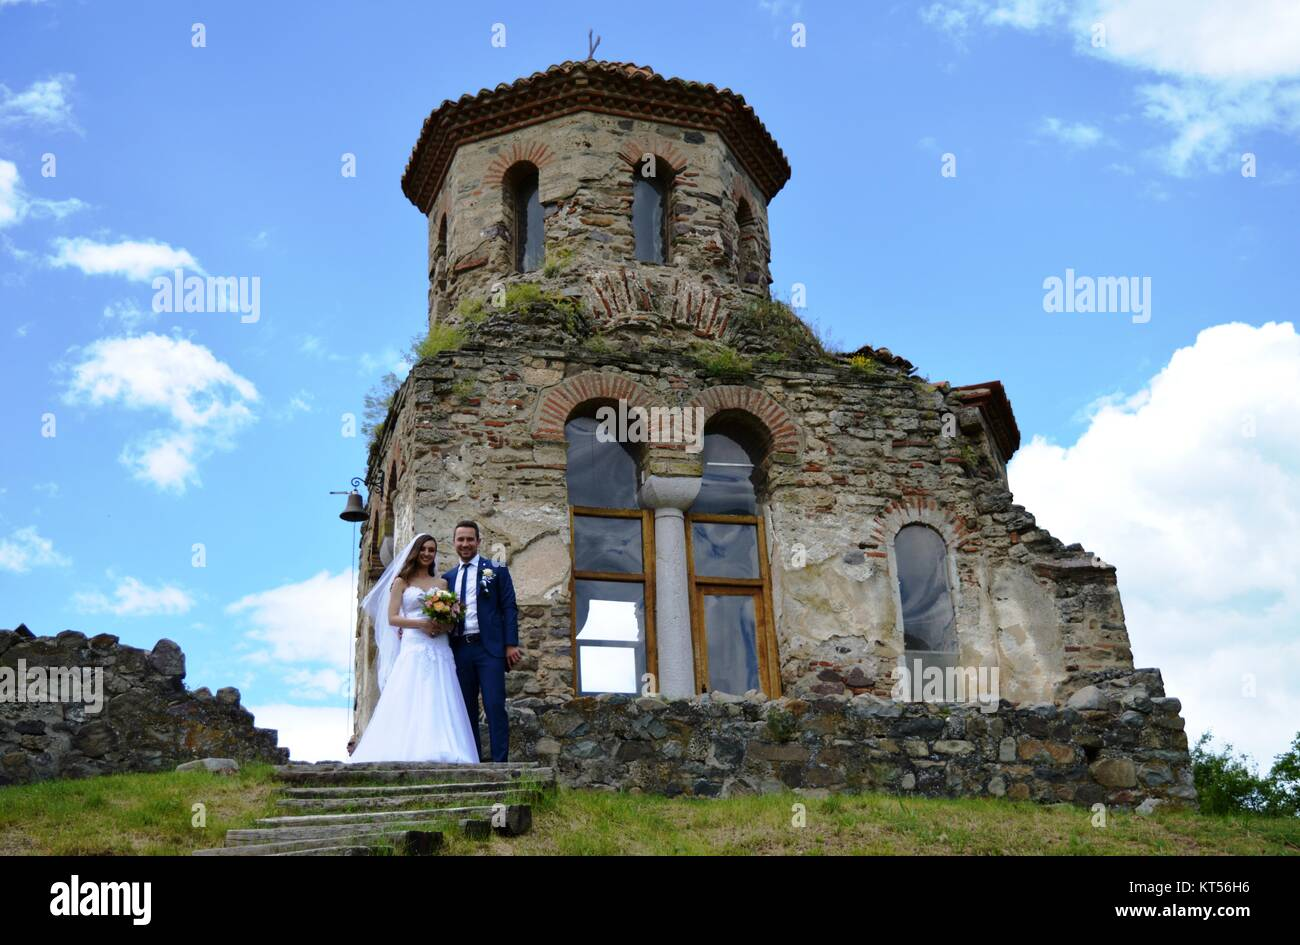 newlyweds next to the old church - Stock Image